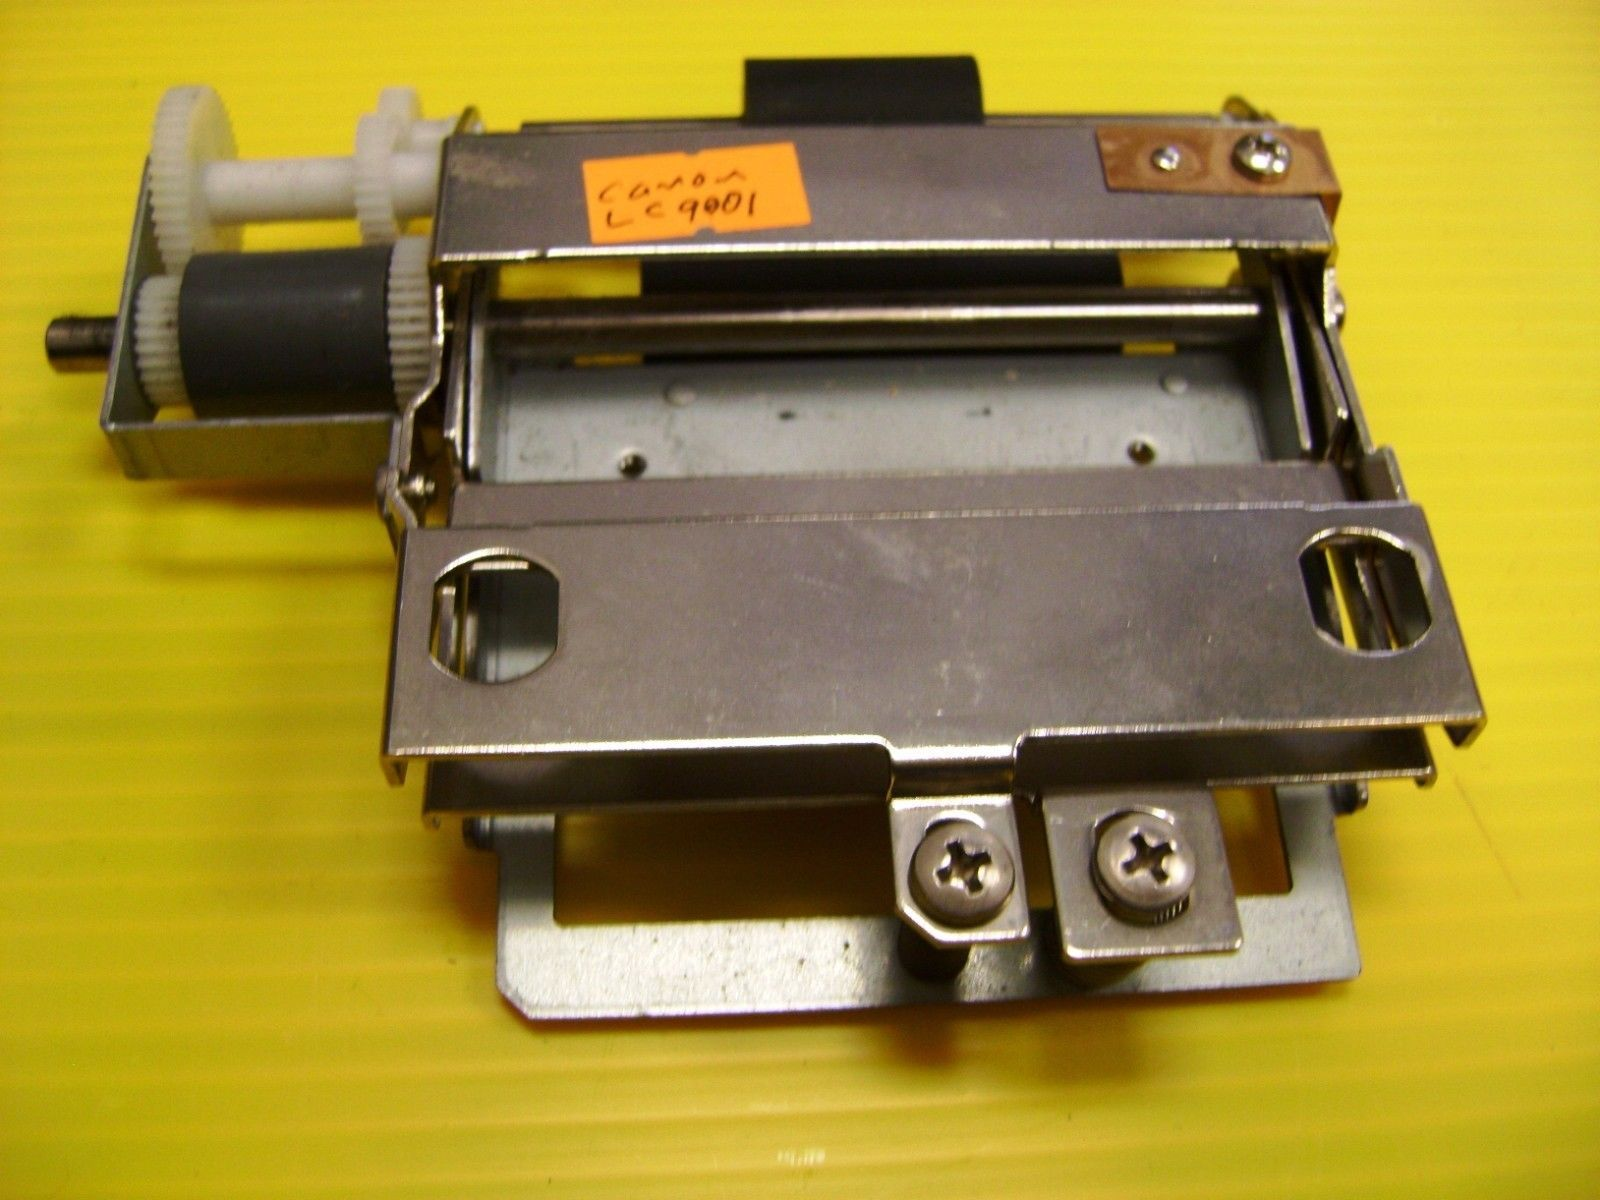 Canon Laser Class LC 9000L Fax Separation Roller Assy HG5 0918 000